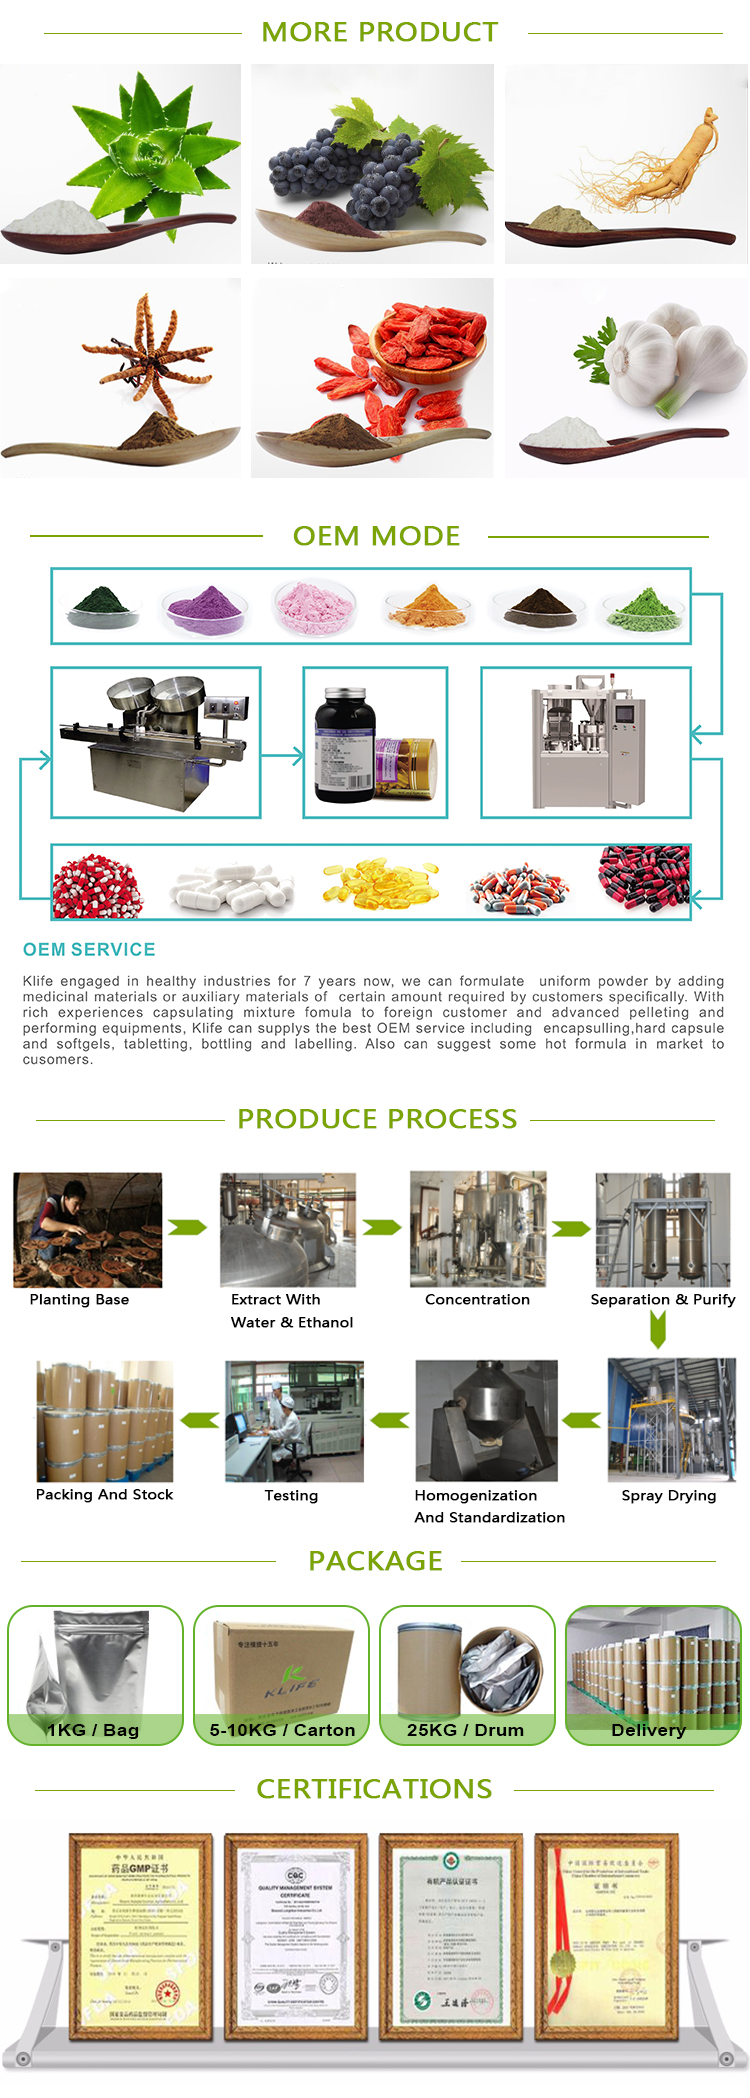 GRAPE SEED EXTRACT 4-pintu.jpg